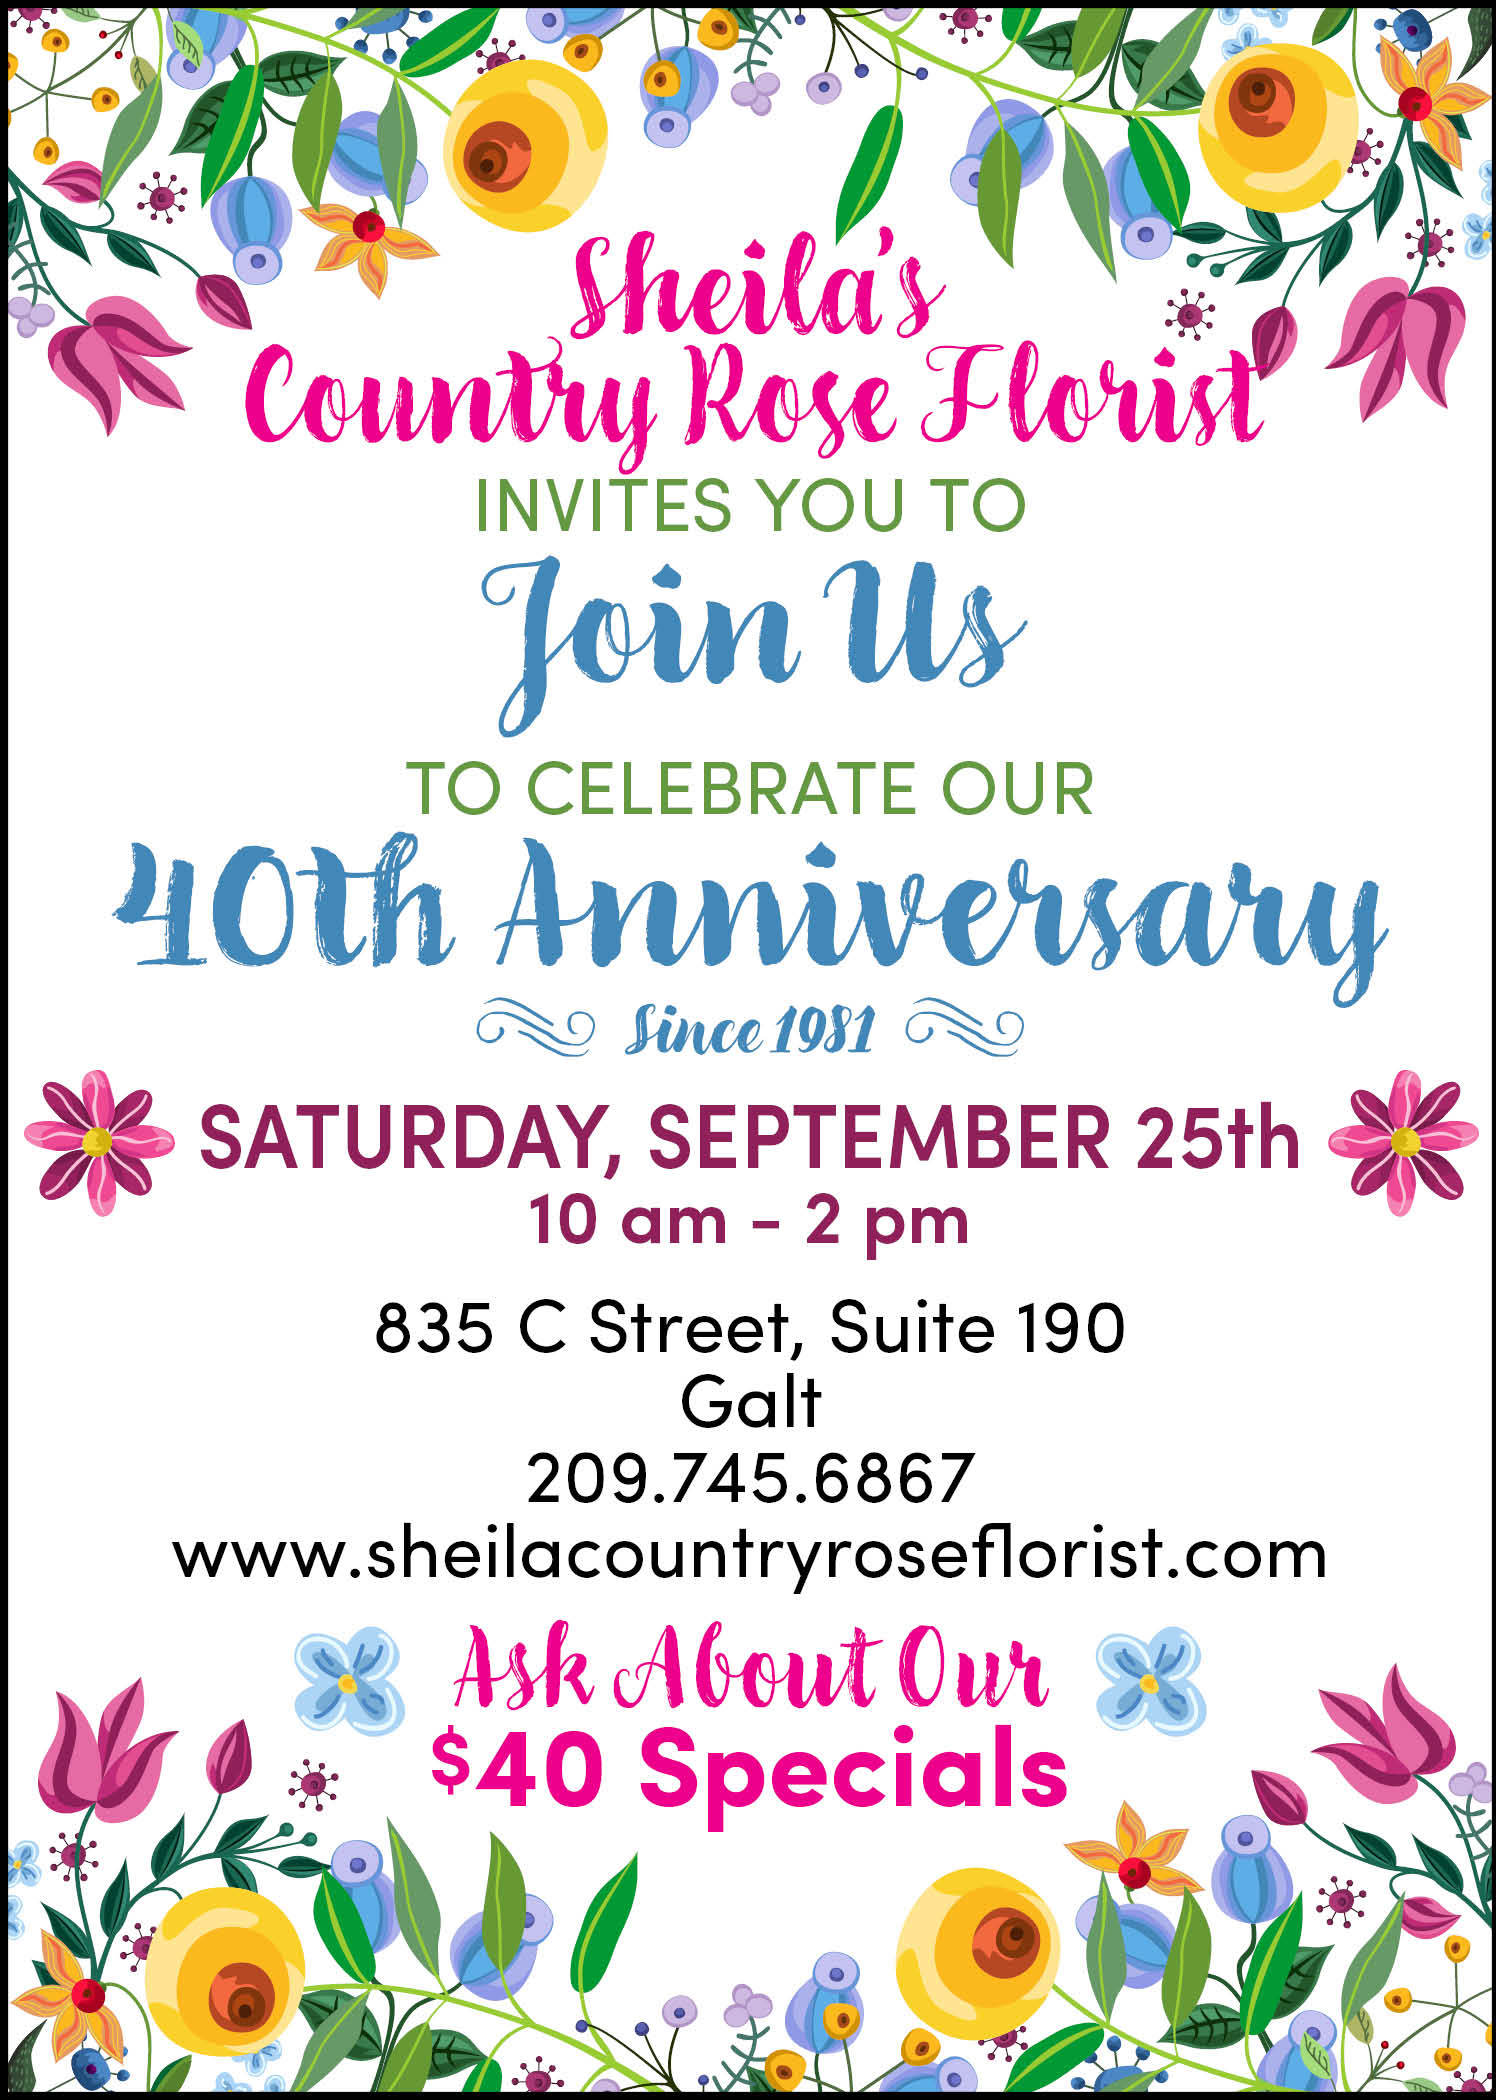 Sheila's Country Rose Florist 40th Anniversary invitation, 09/25/2021, 10am to 2 pm, 835 C St., Ste. 190, in Galt